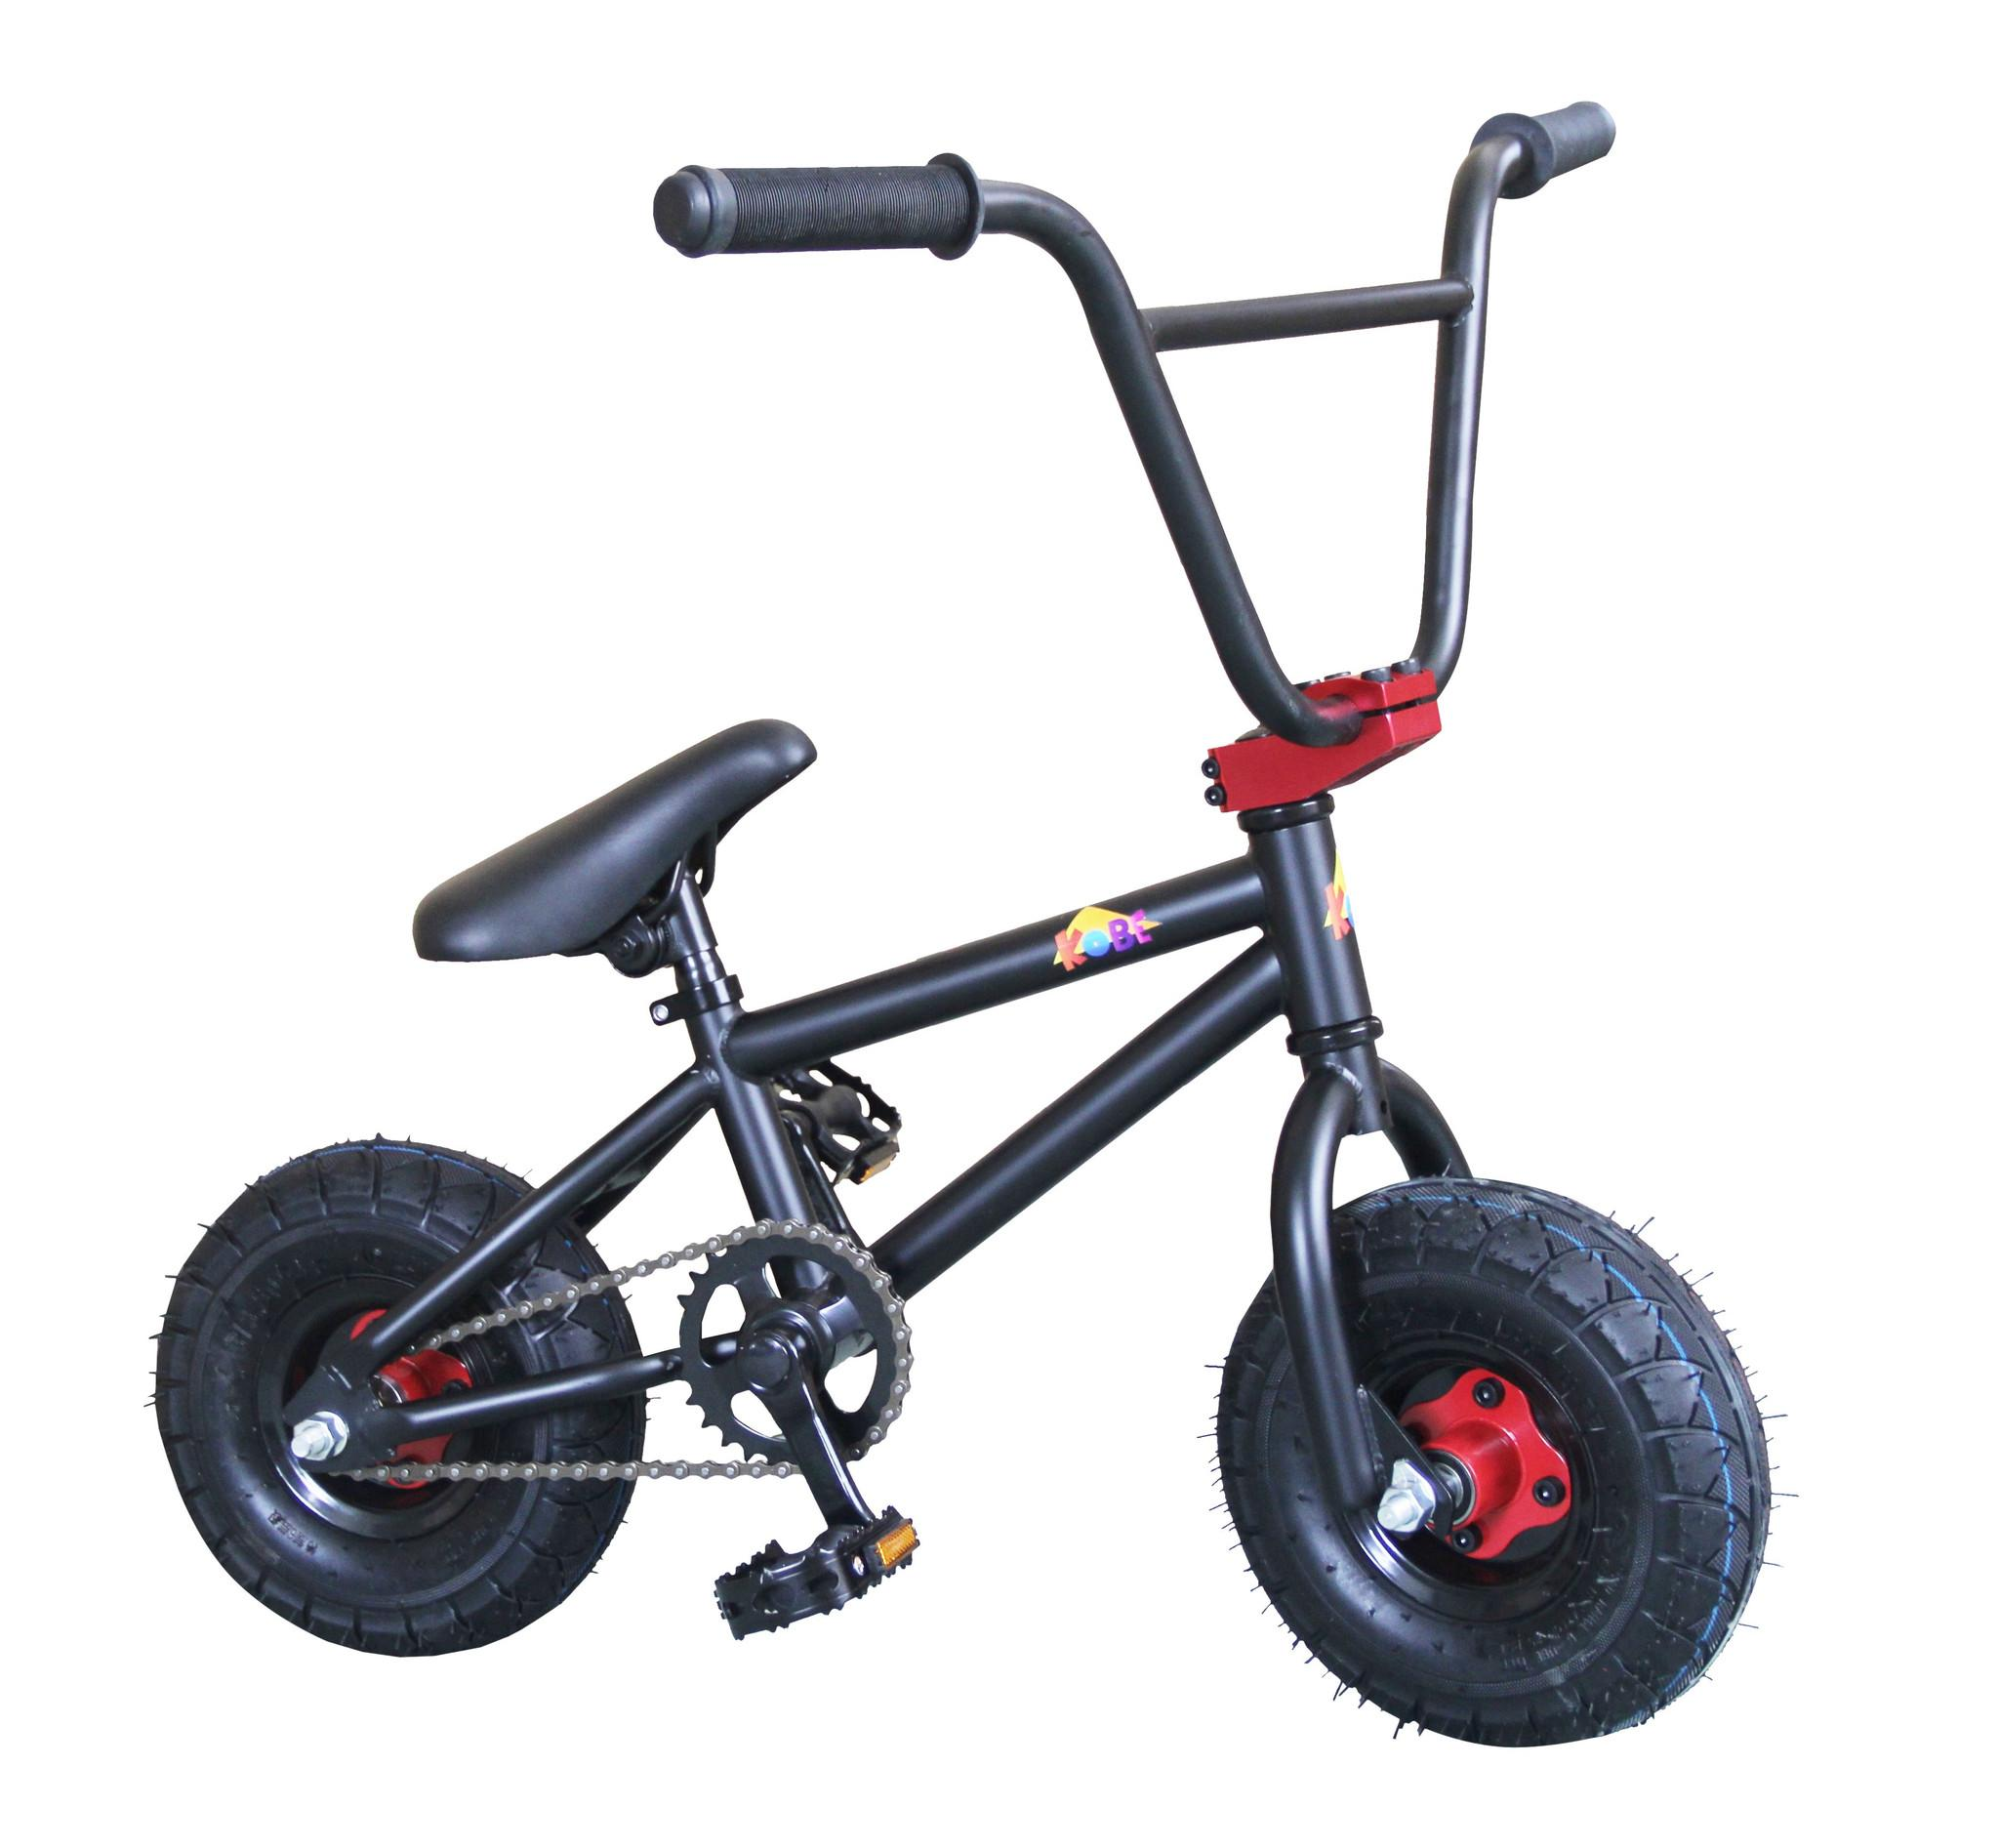 Kobe 40 22003 Mini Bmx Bike Black Red Sports Outdoors